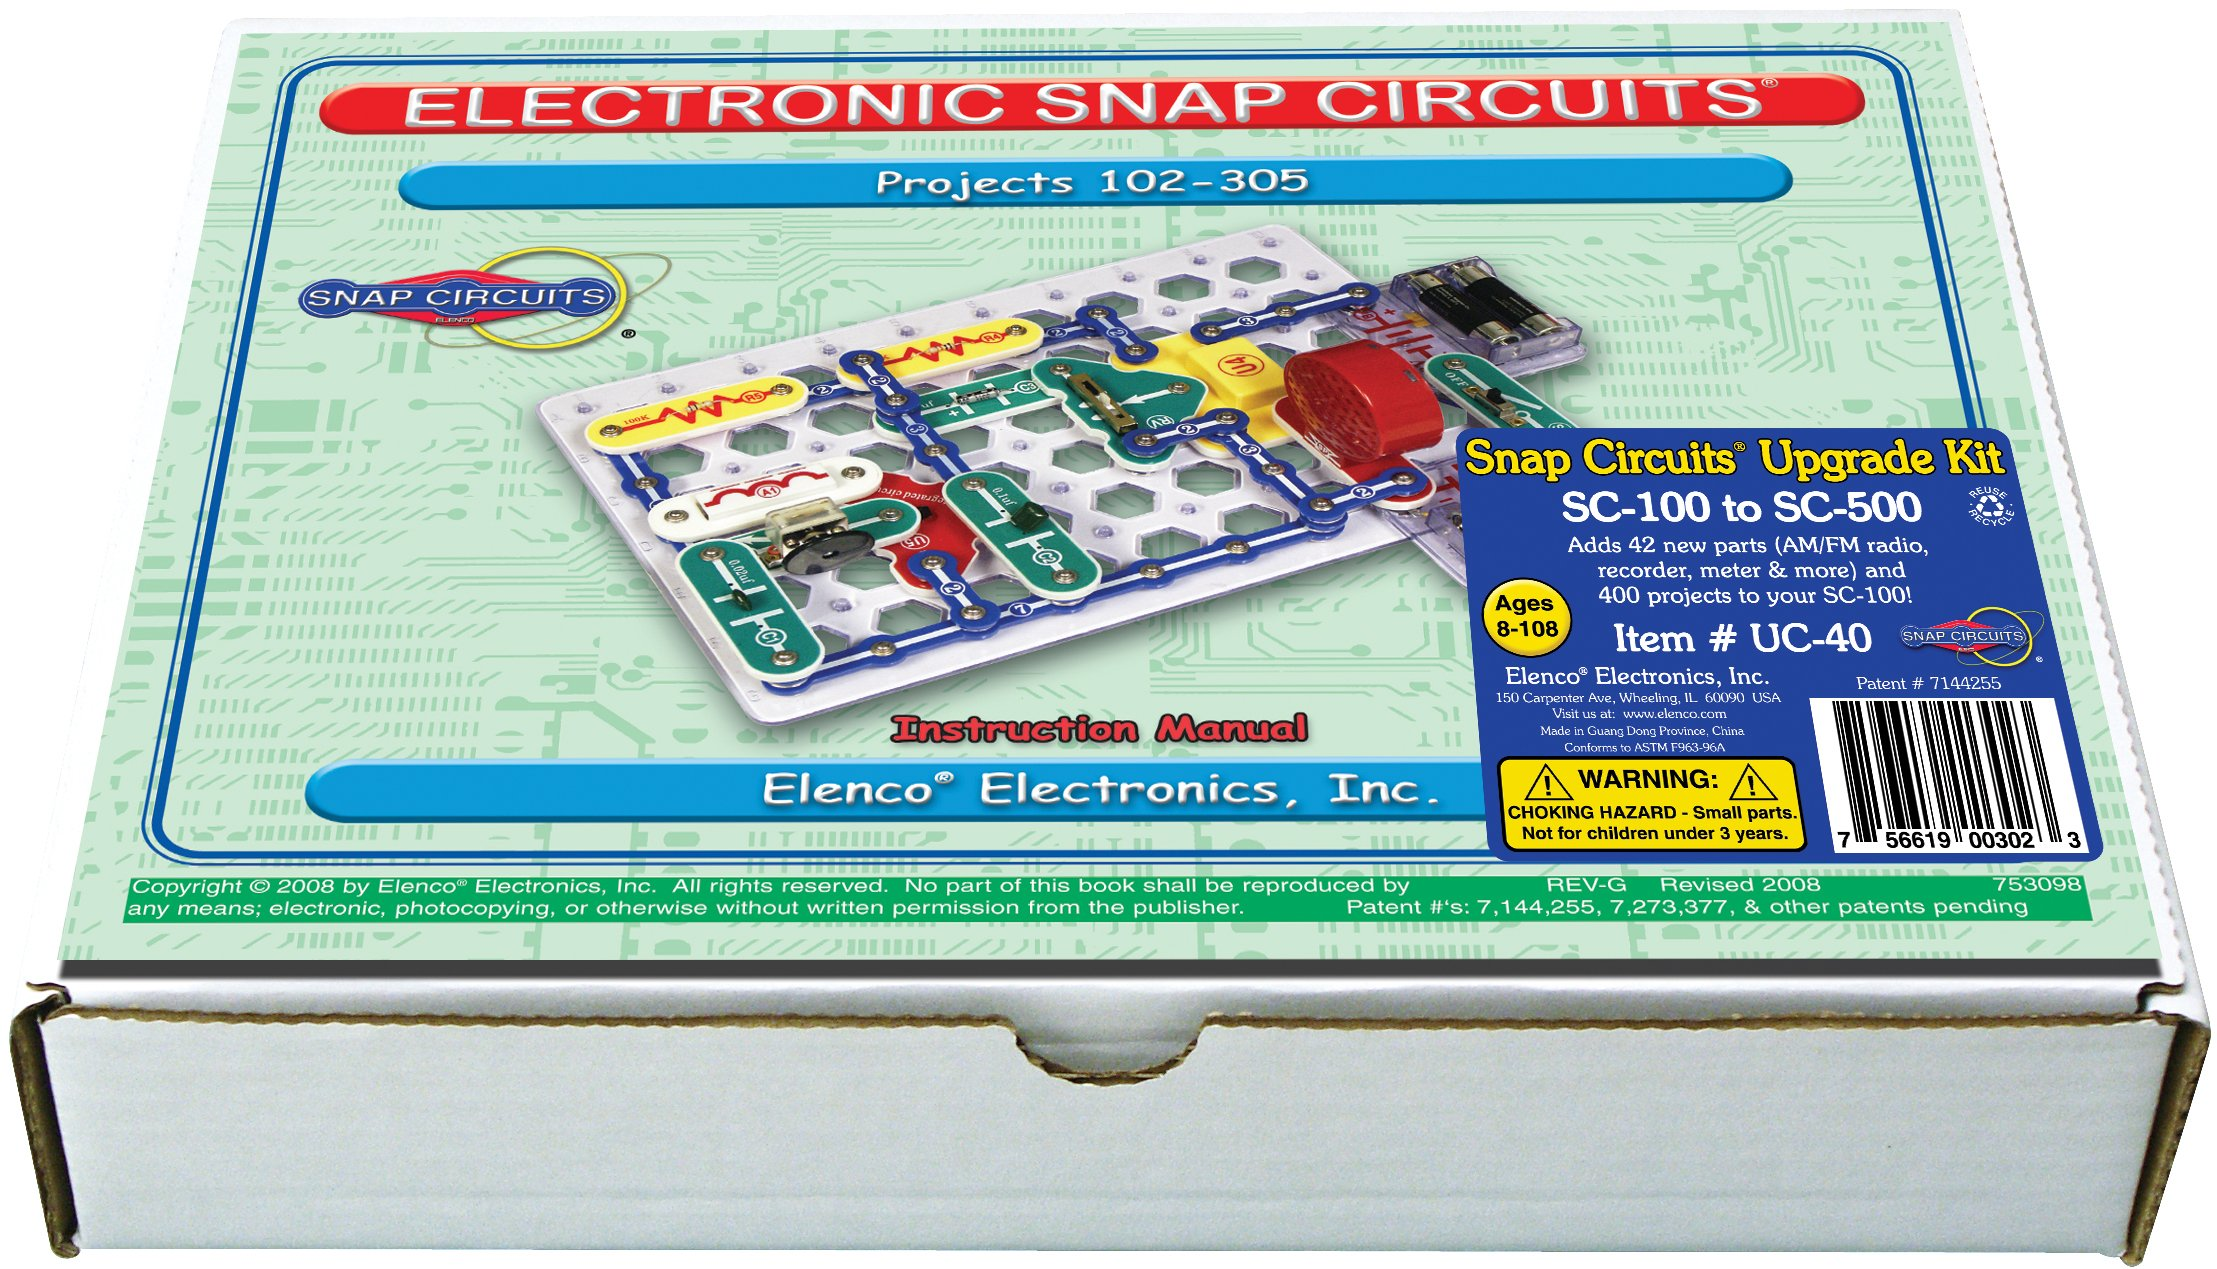 Buy Snap Circuits Pro Sc 500 Electronics Discovery Kit In Cheap Elenco Electronic Set Uc 40 Upgrade 100 To